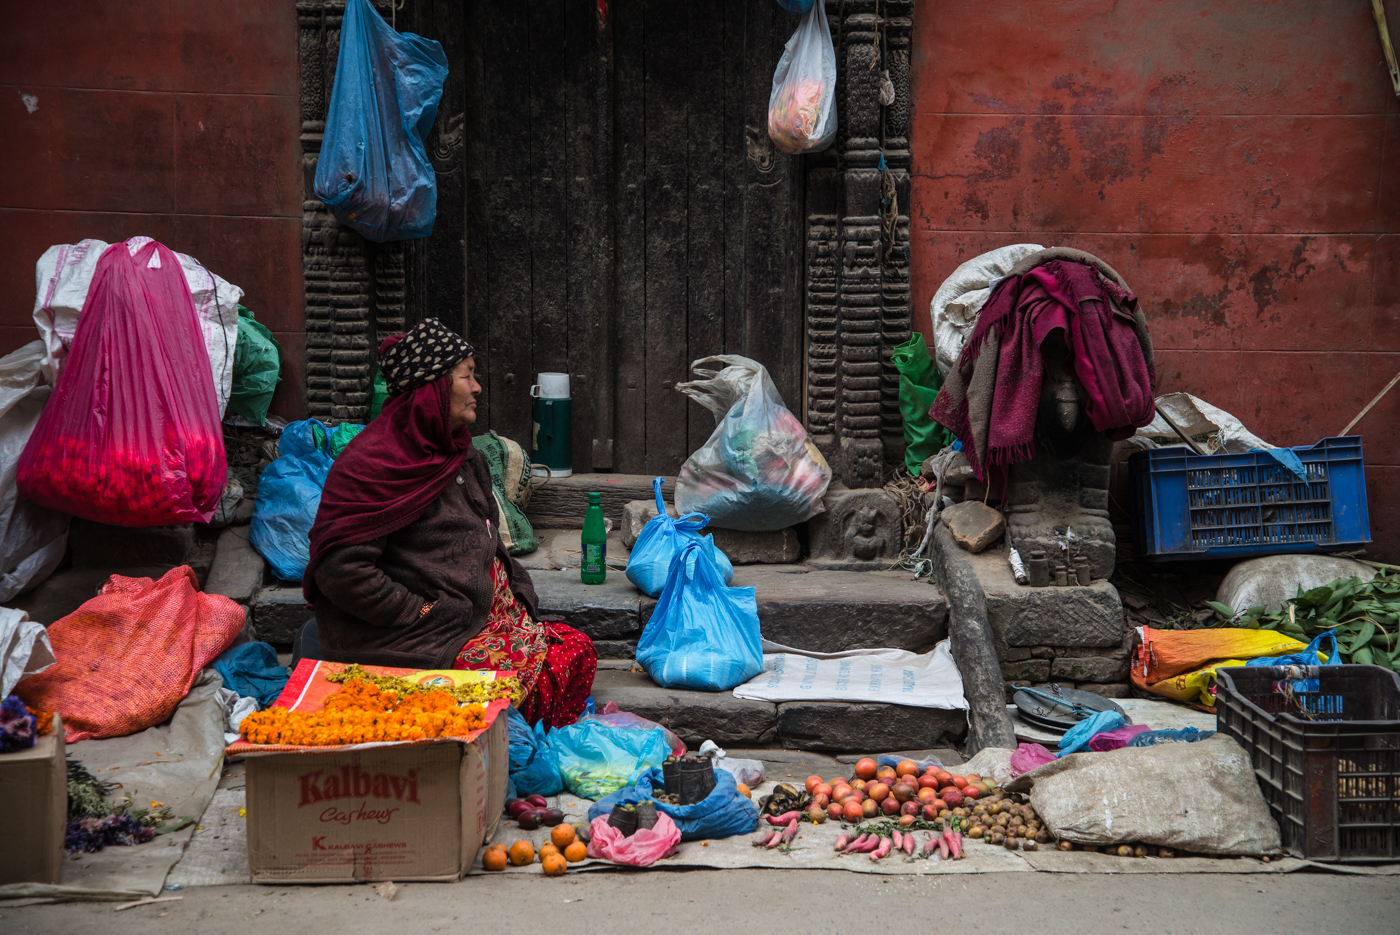 A woman sells her wares on the side of the street in Nepal's capital, Kathmandu.